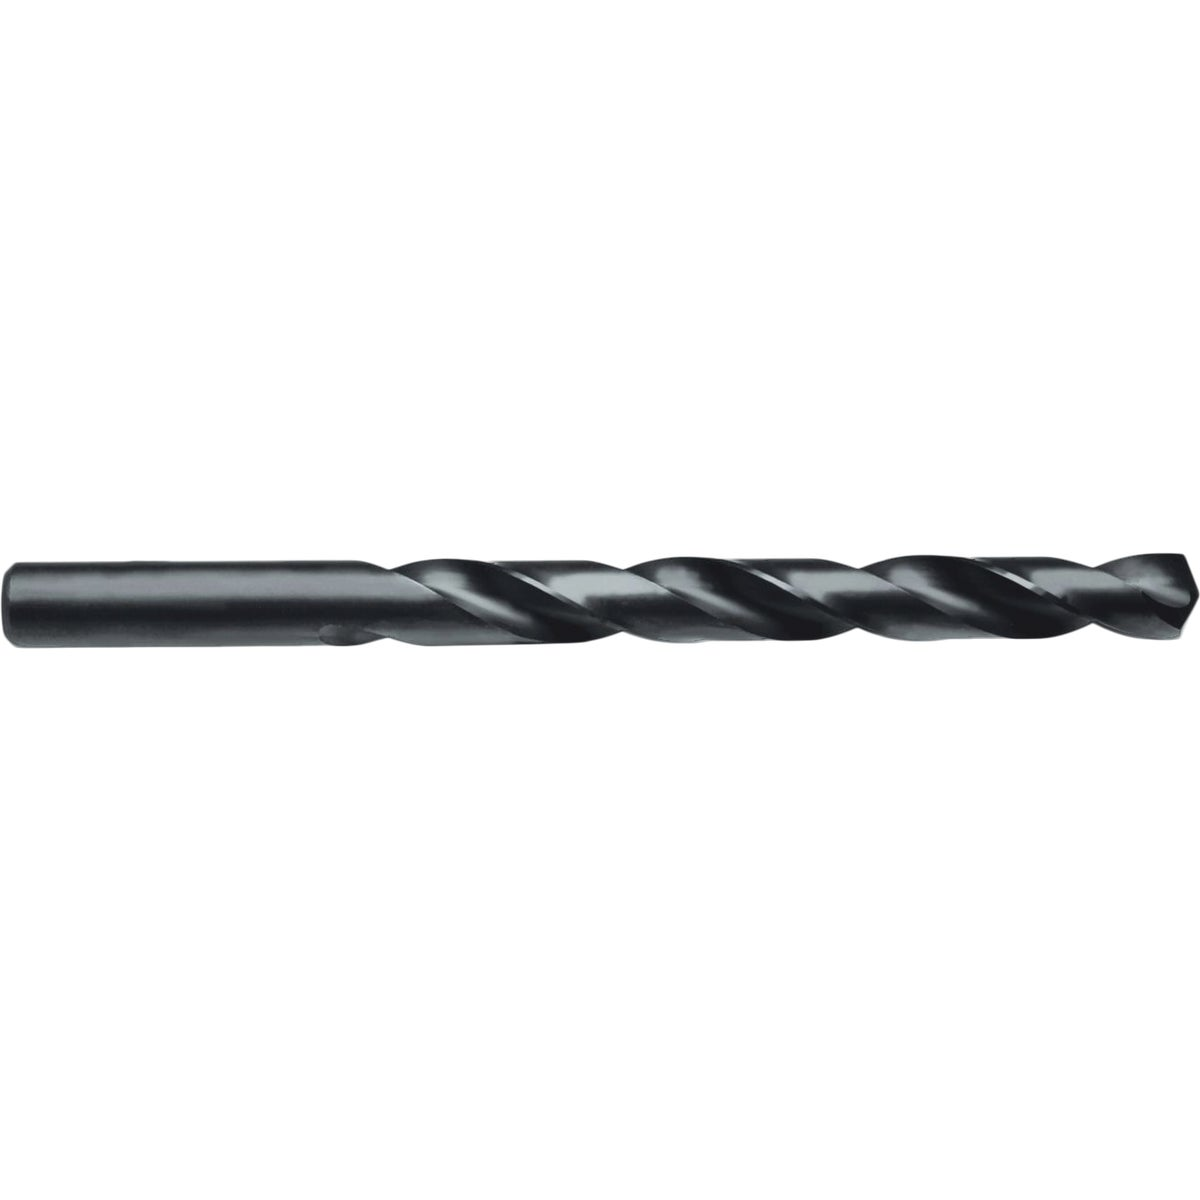 "13/32"" BLACK OXIDE BIT - DW1126 by DeWalt"